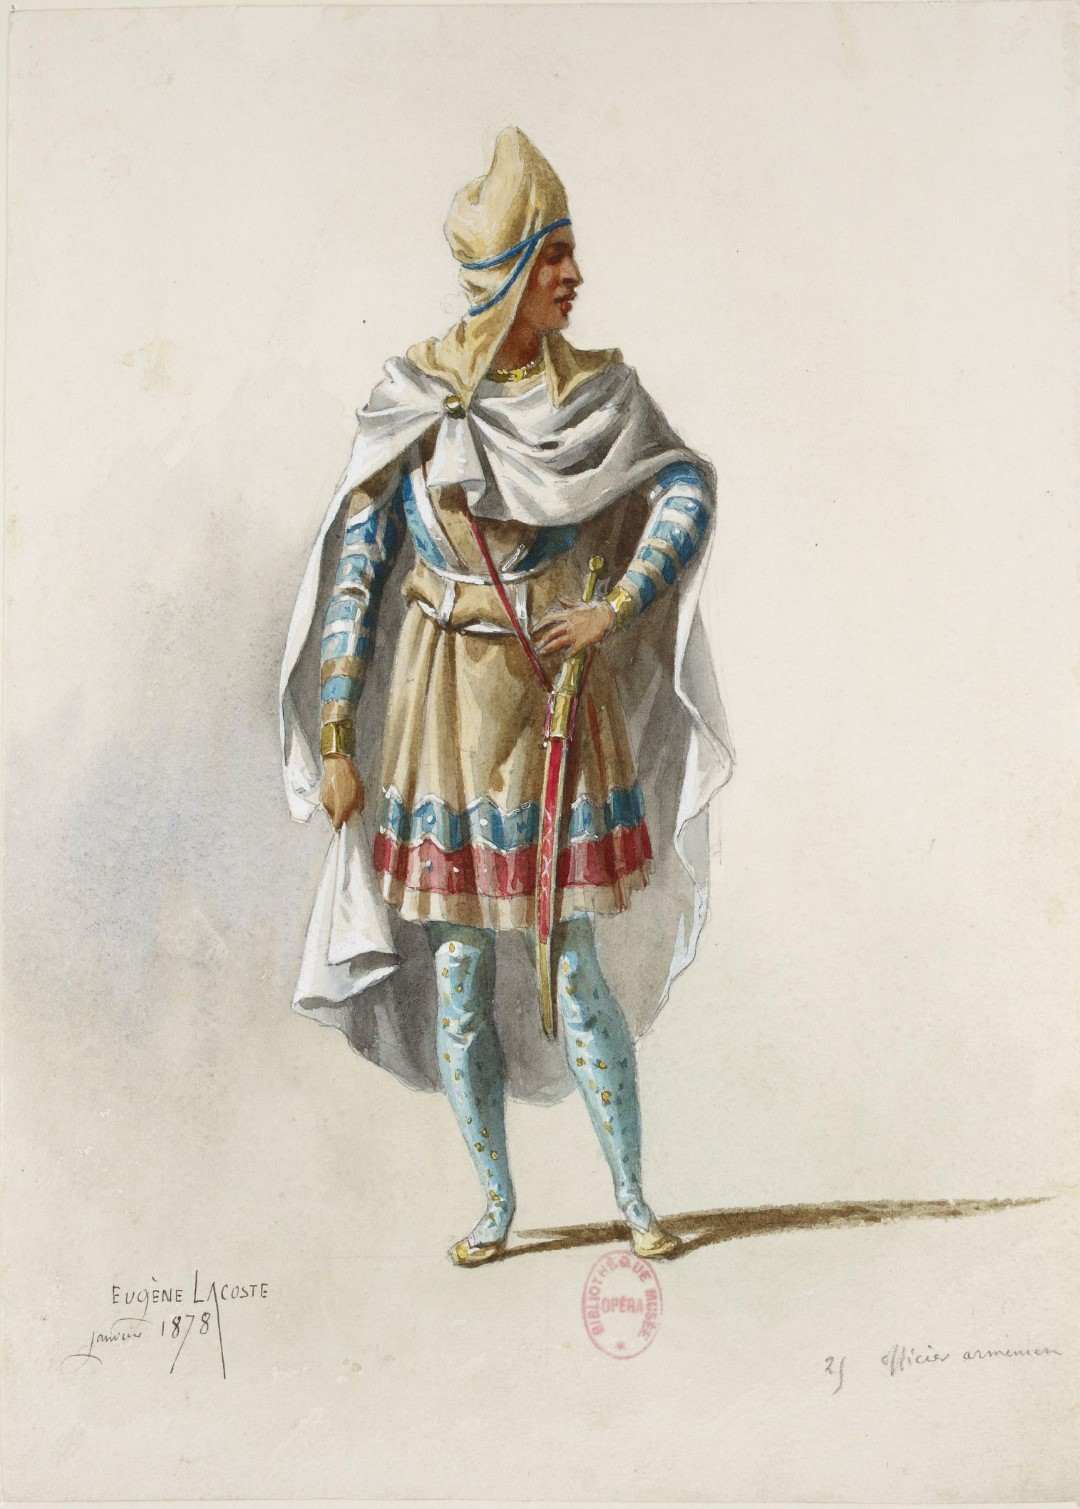 Armenian Officer by Eugene Lacoste